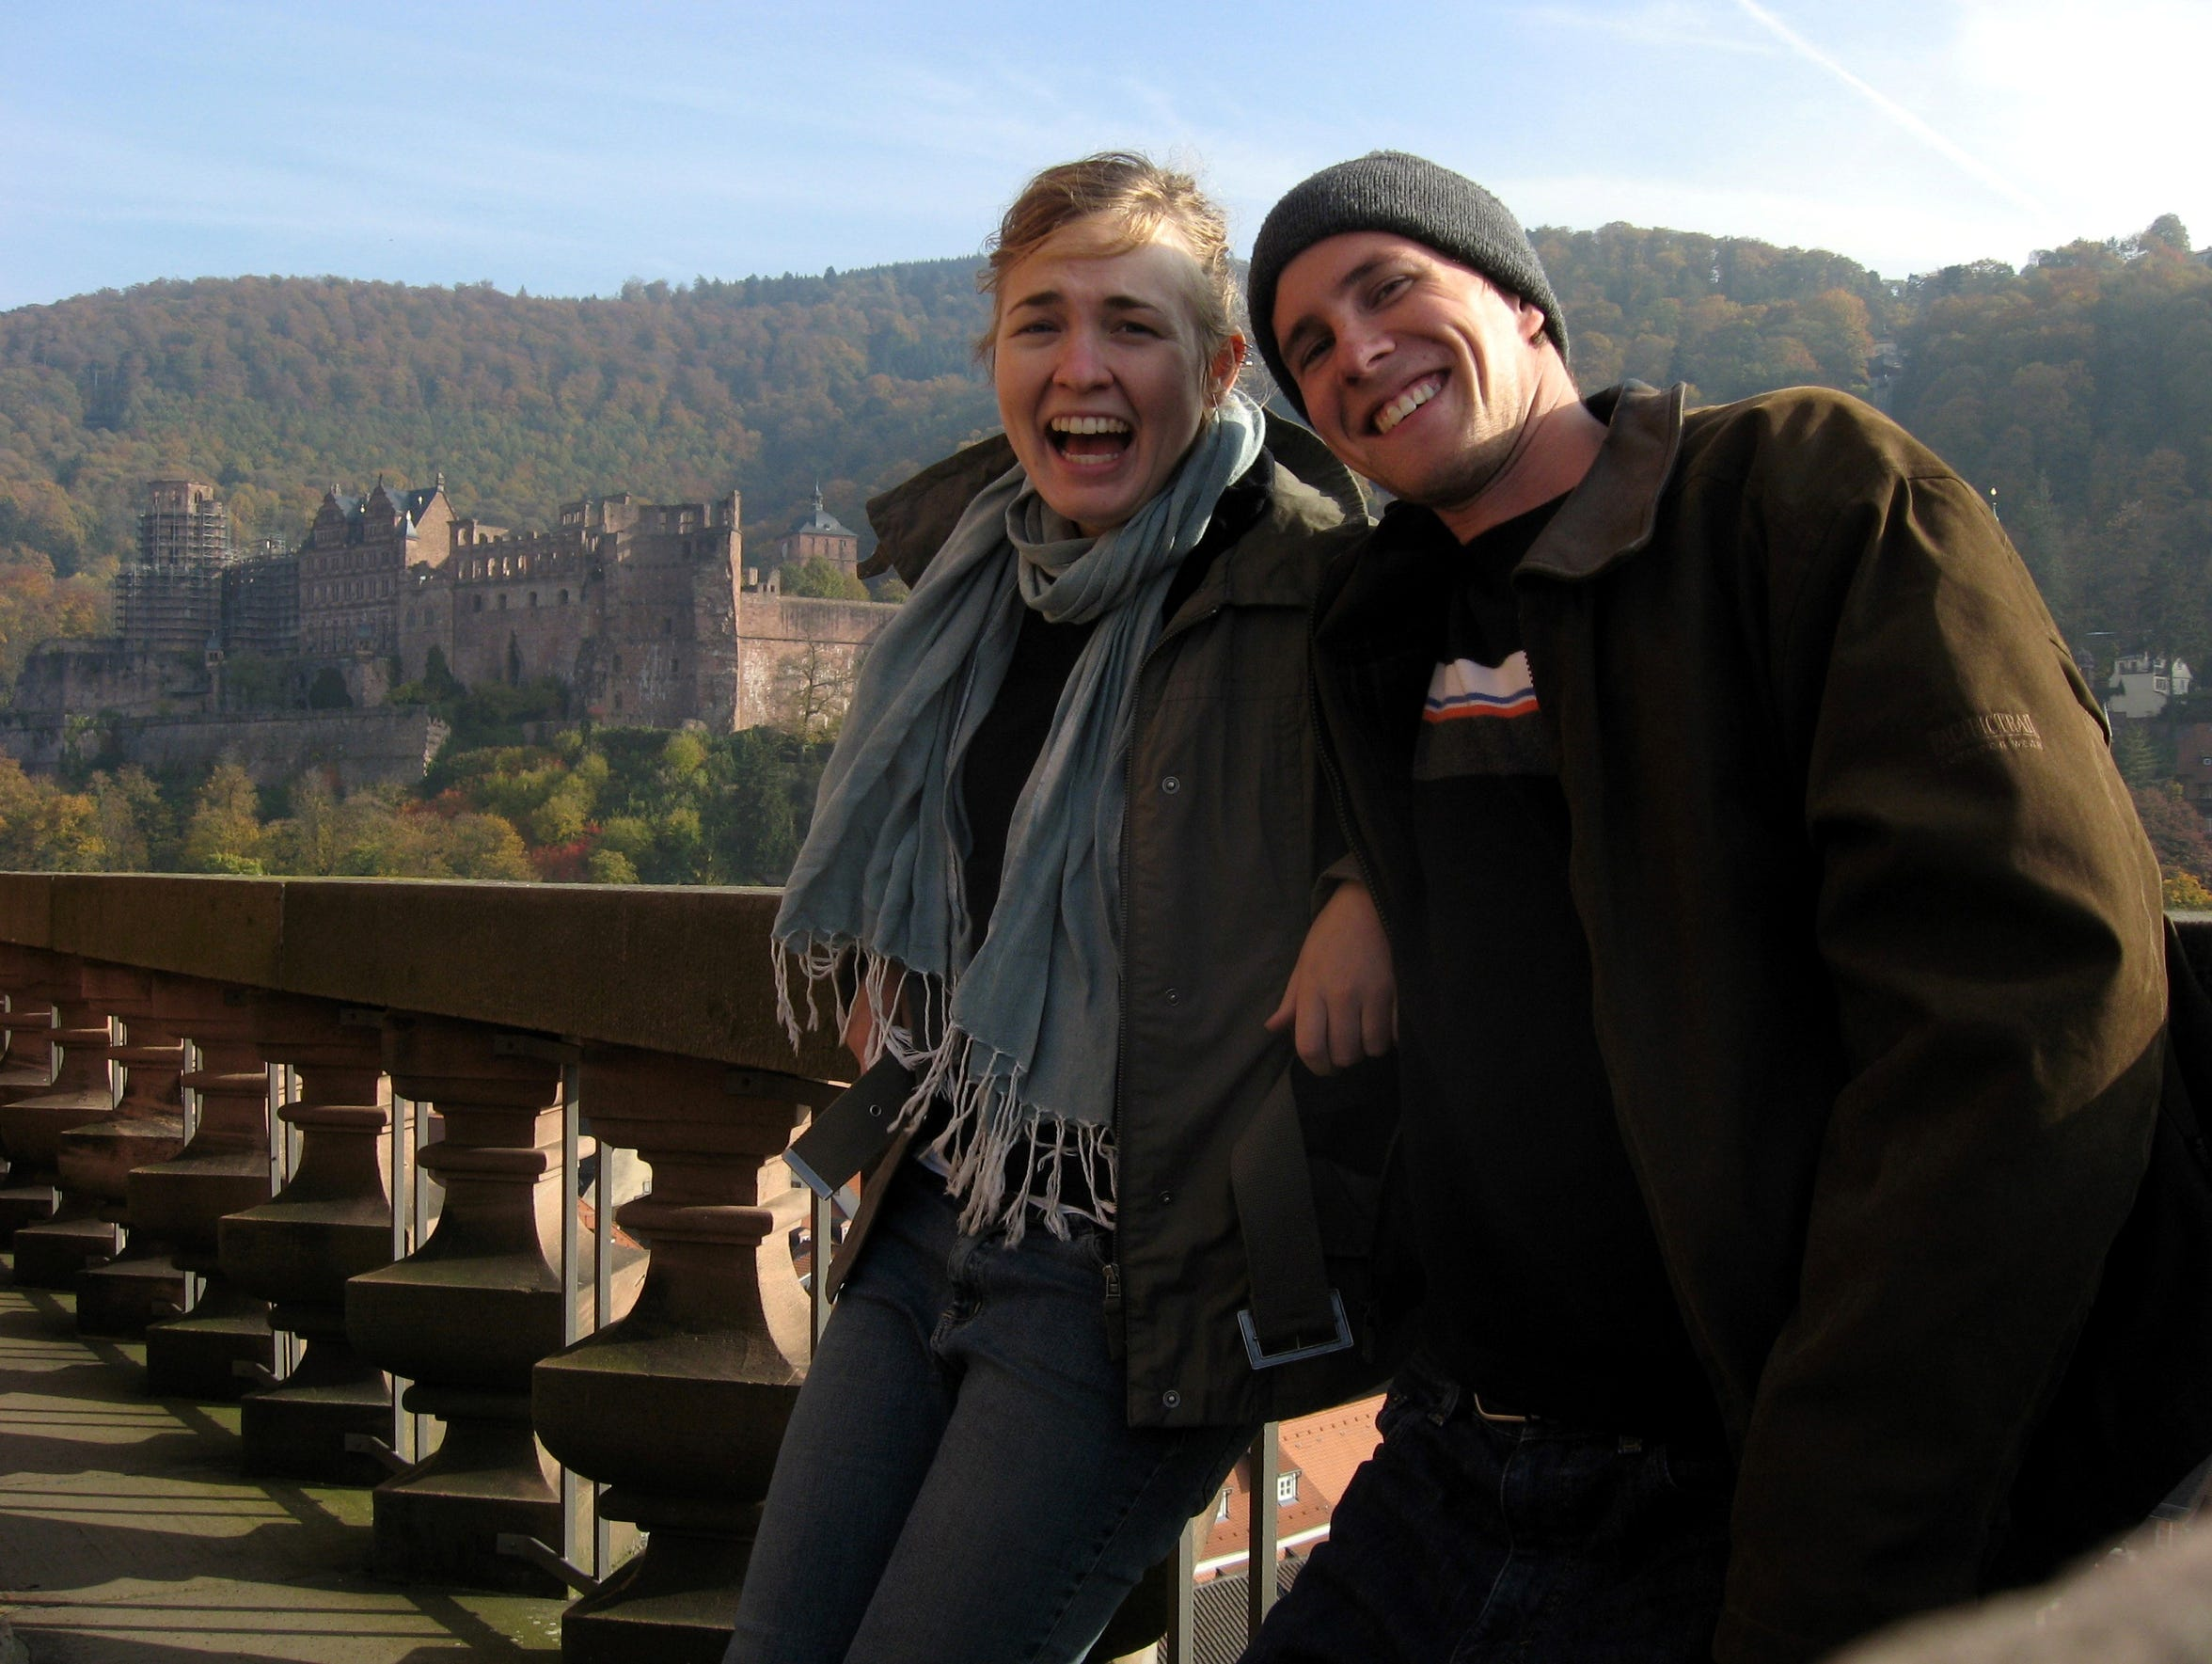 Nora Hertel and Ben Decker in Heidelberg, Germany,